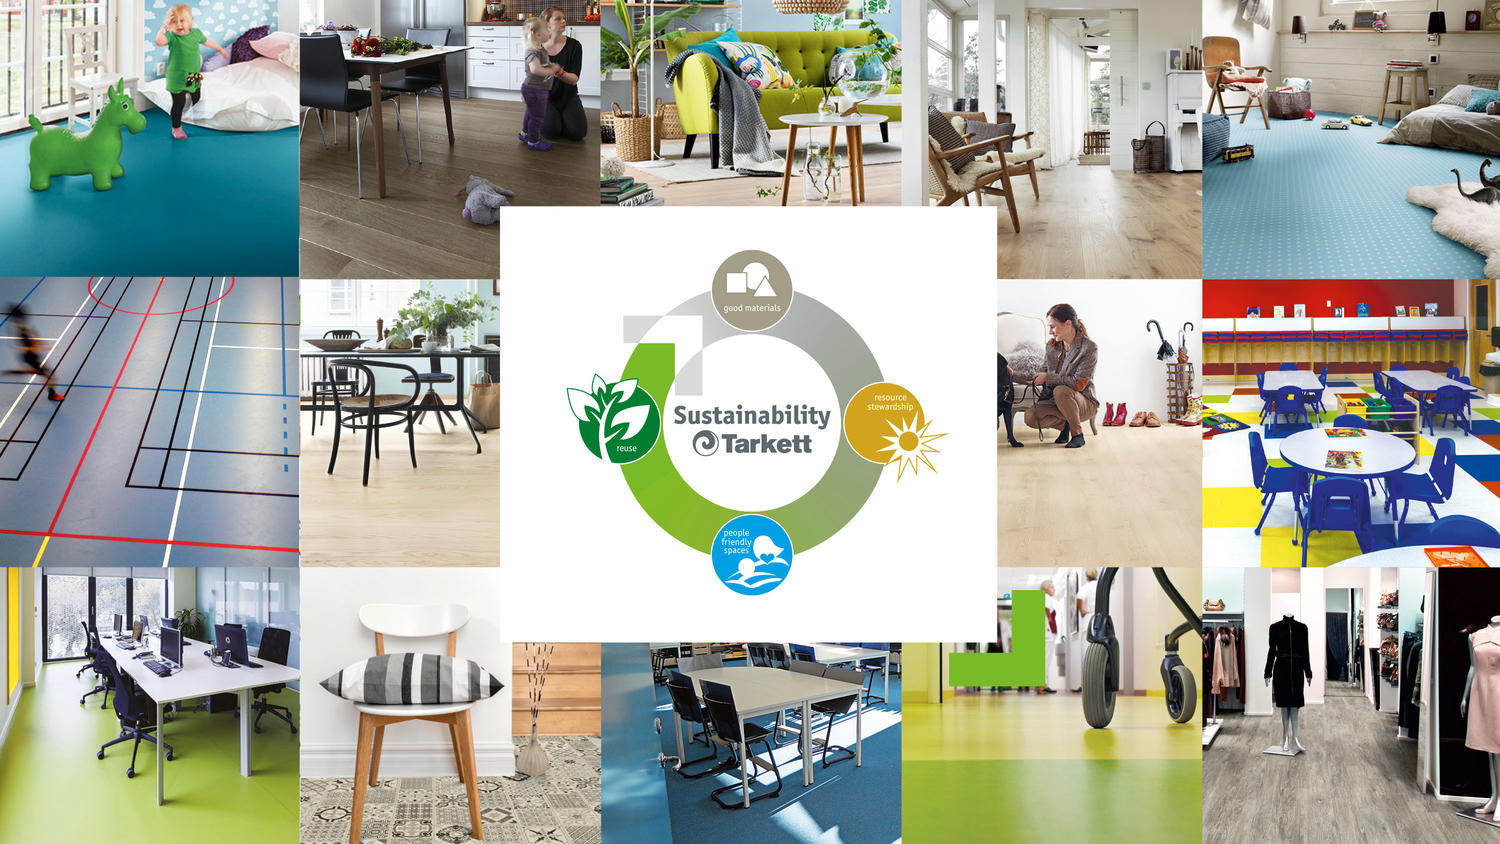 Tarkett's Sustainability Strategy for 2020